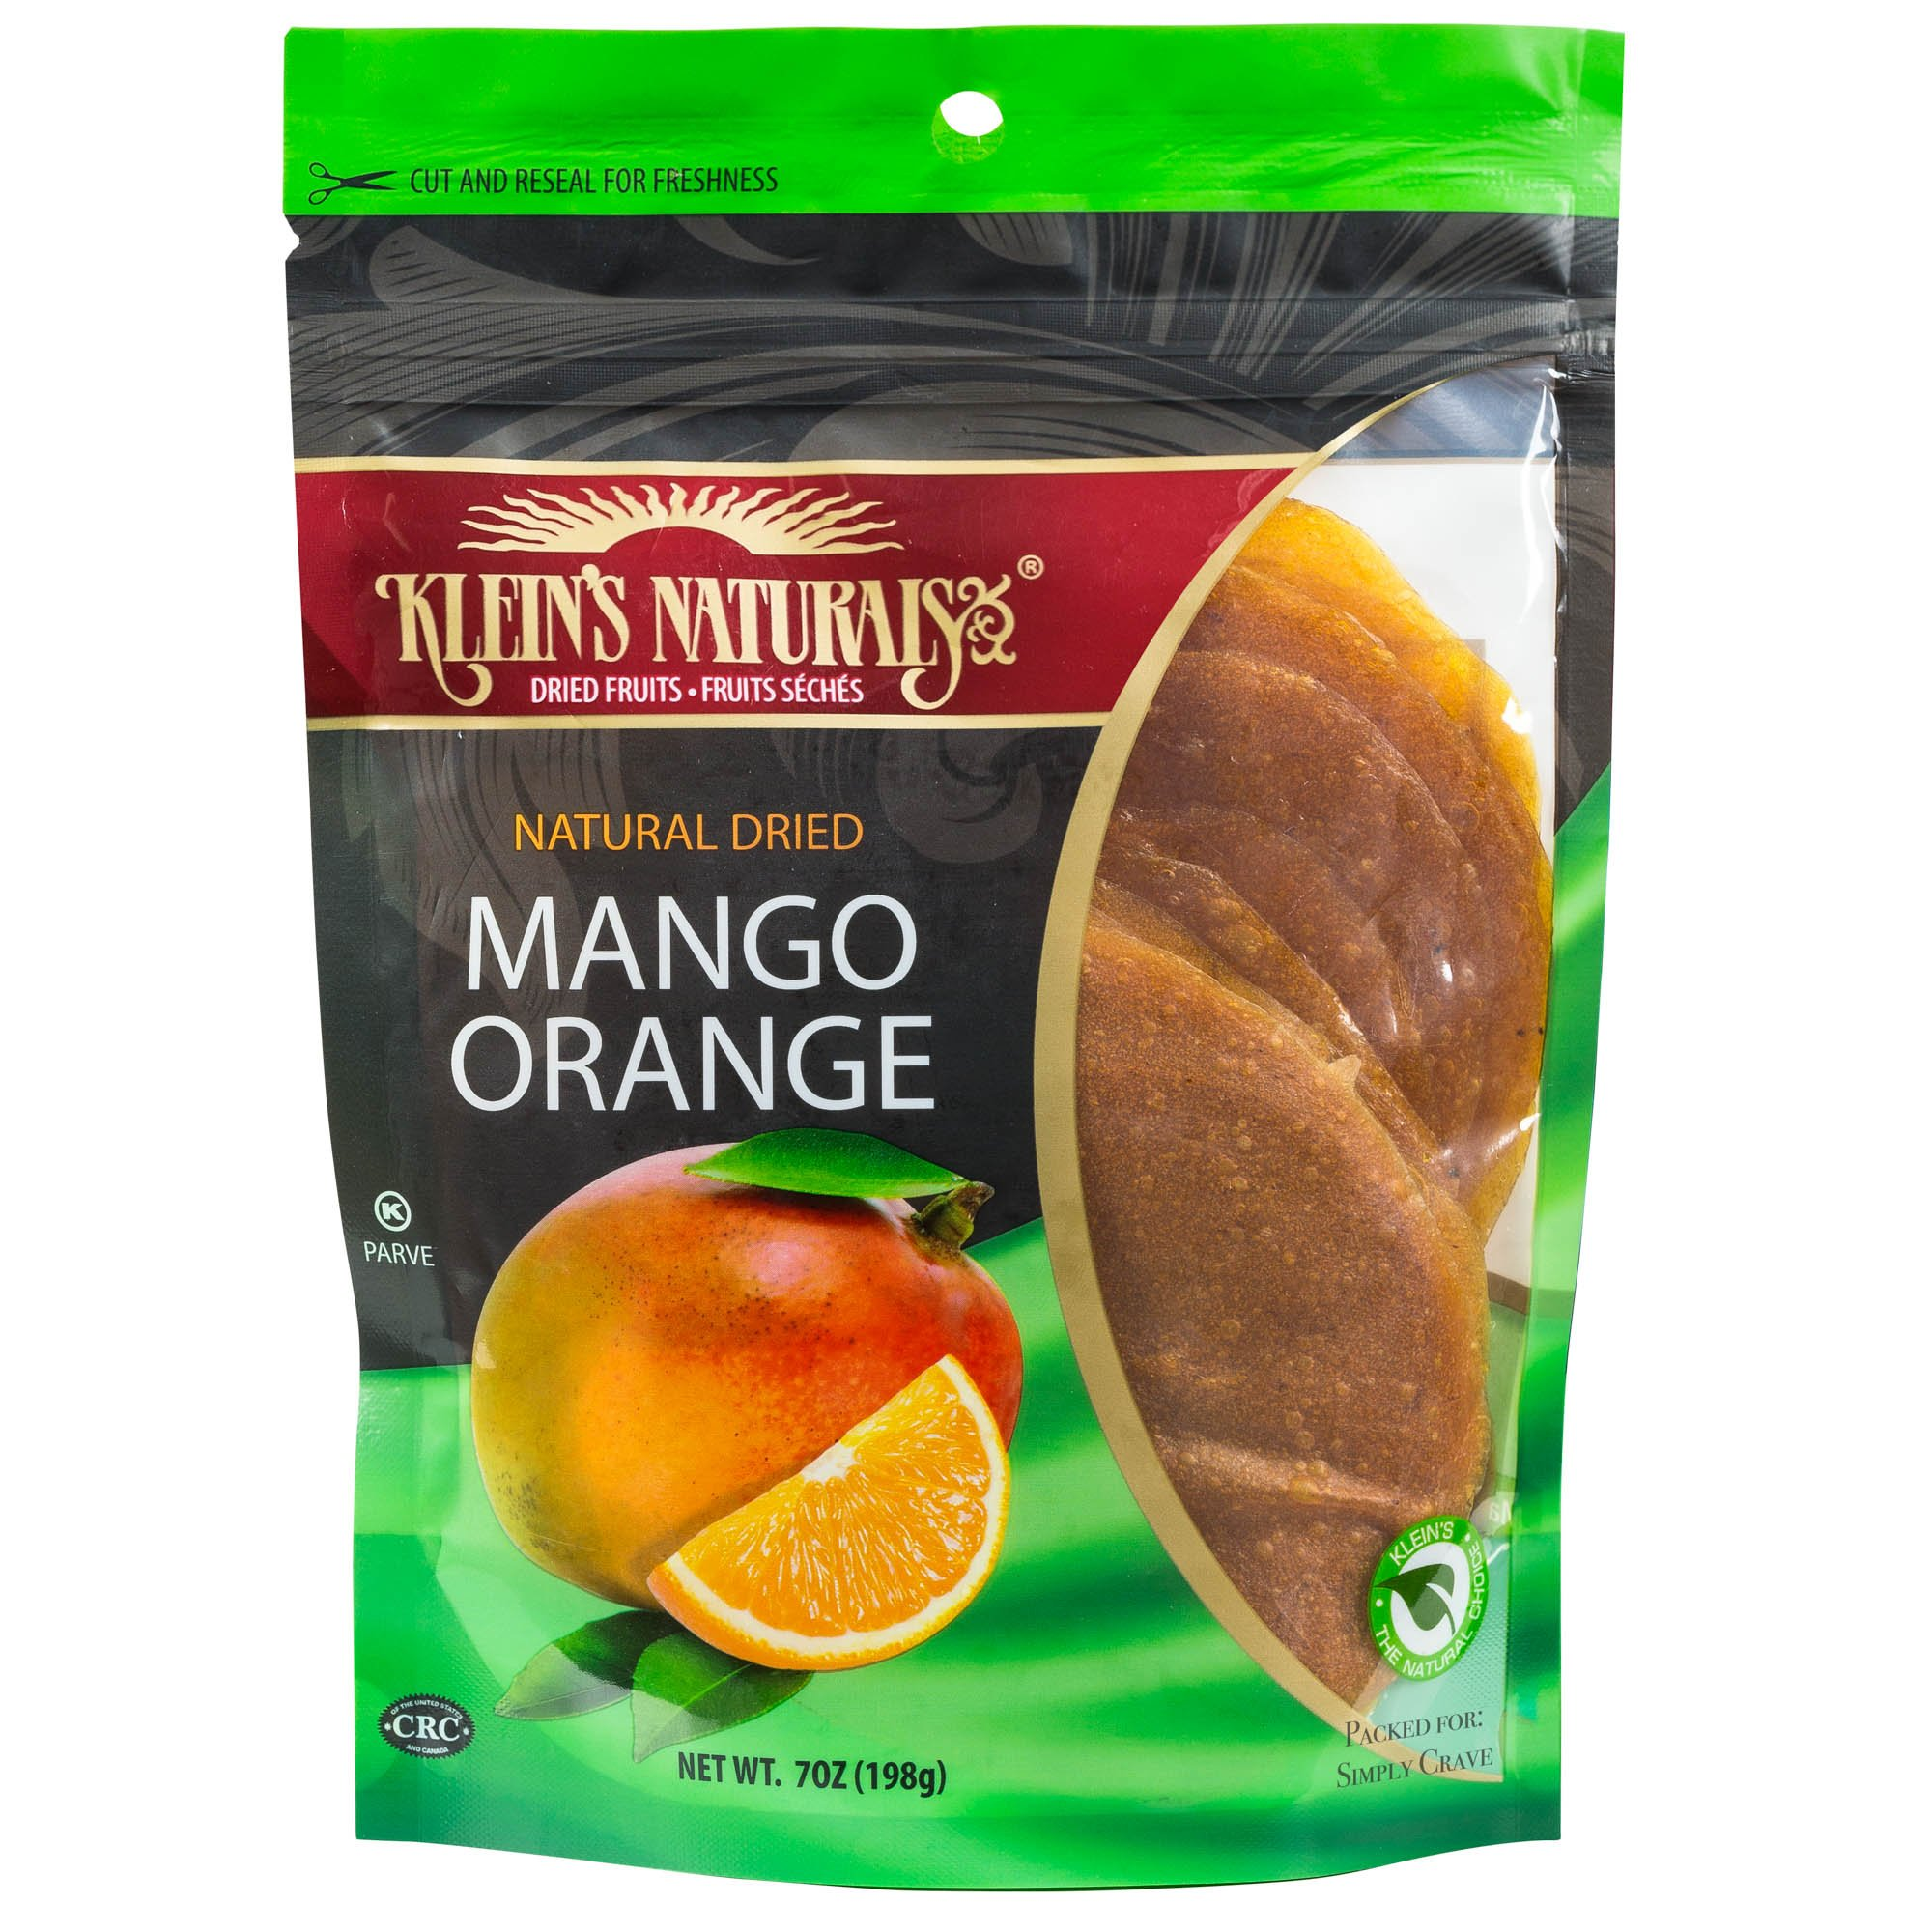 Klein's Naturals Natural Dried Mango Orange Discs, Kosher Certified Fruit Leather, Resealable Pouches of Fruit Leathers Discs 7-Ounce (Pack of 3) by  (Image #1)